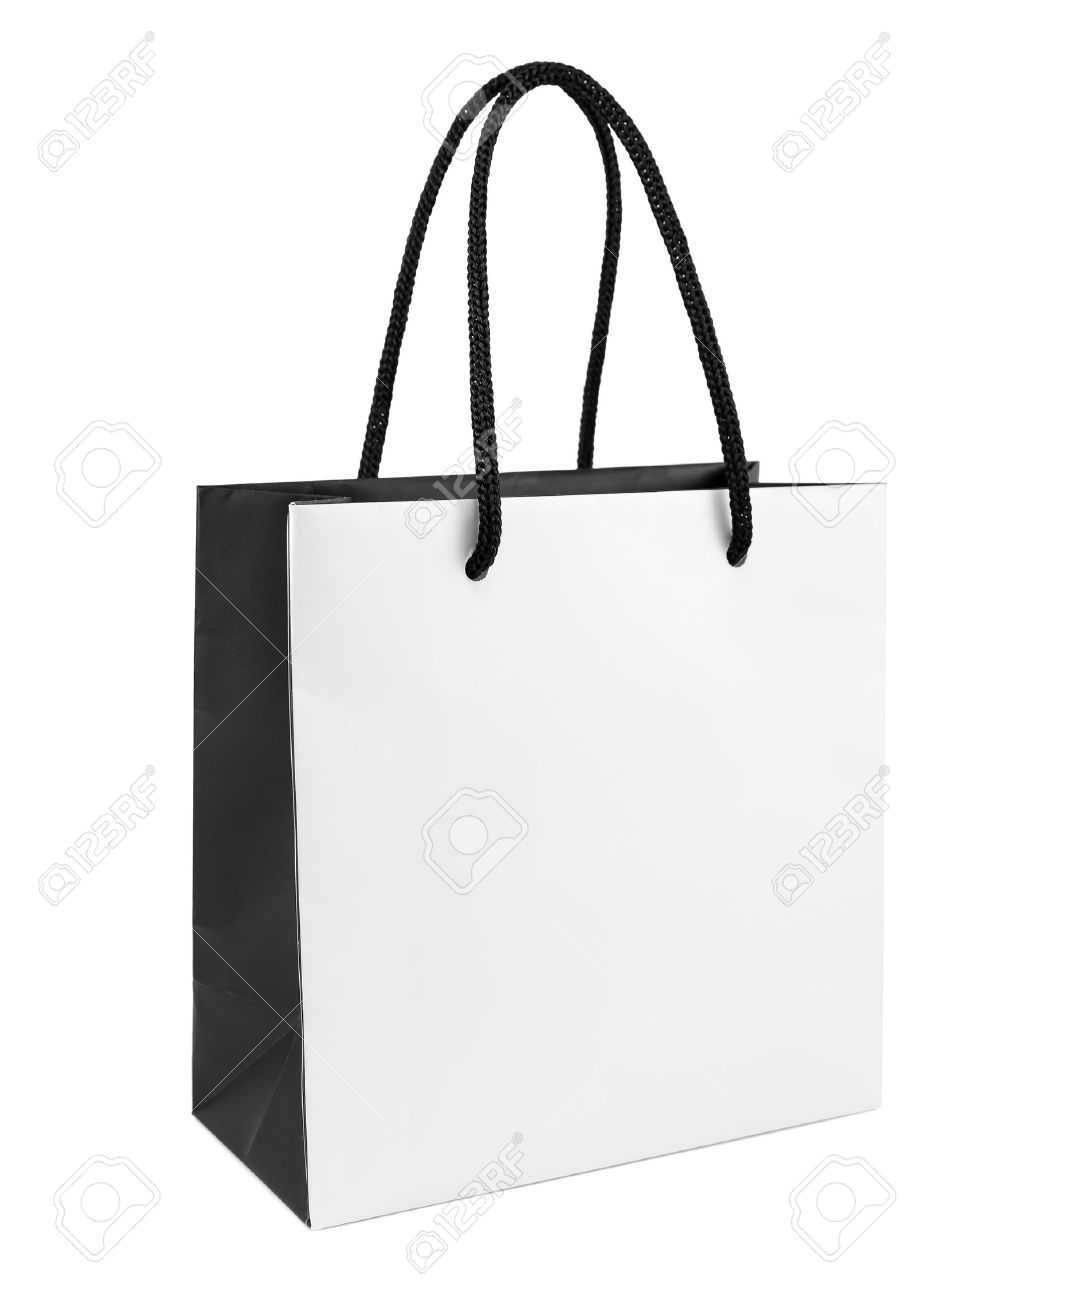 Shopping Bag Stock Photos Images. Royalty Free Shopping Bag Images ...